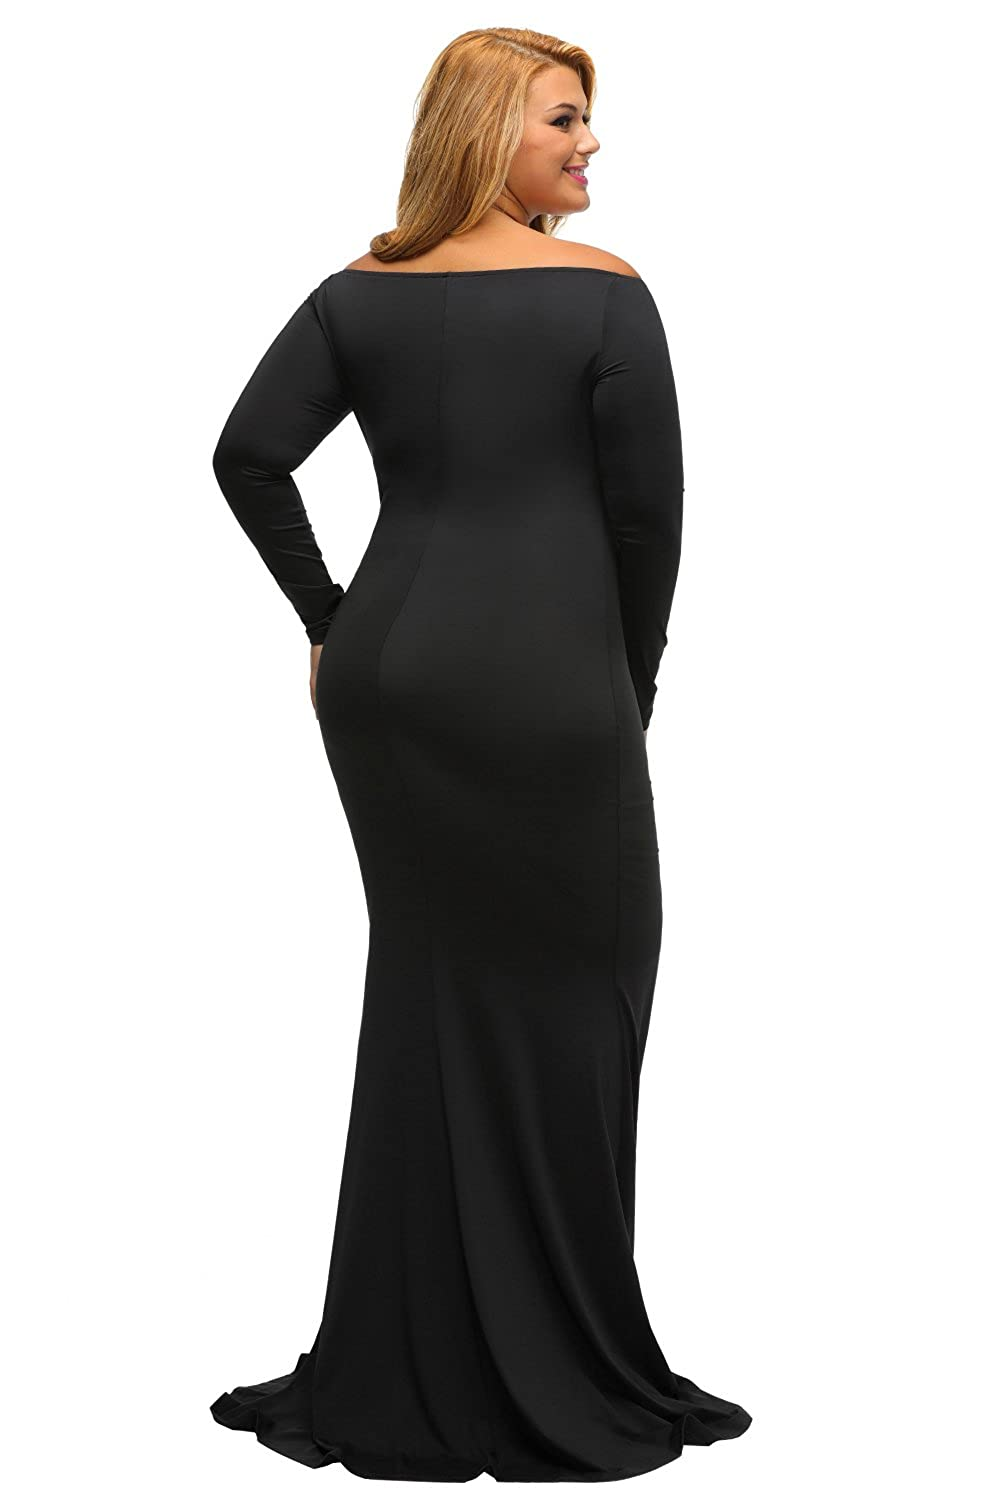 fffc6cb3bba Lalagen Women s Plus Size Off Shoulder Long Sleeve Formal Gown at Amazon  Women s Clothing store